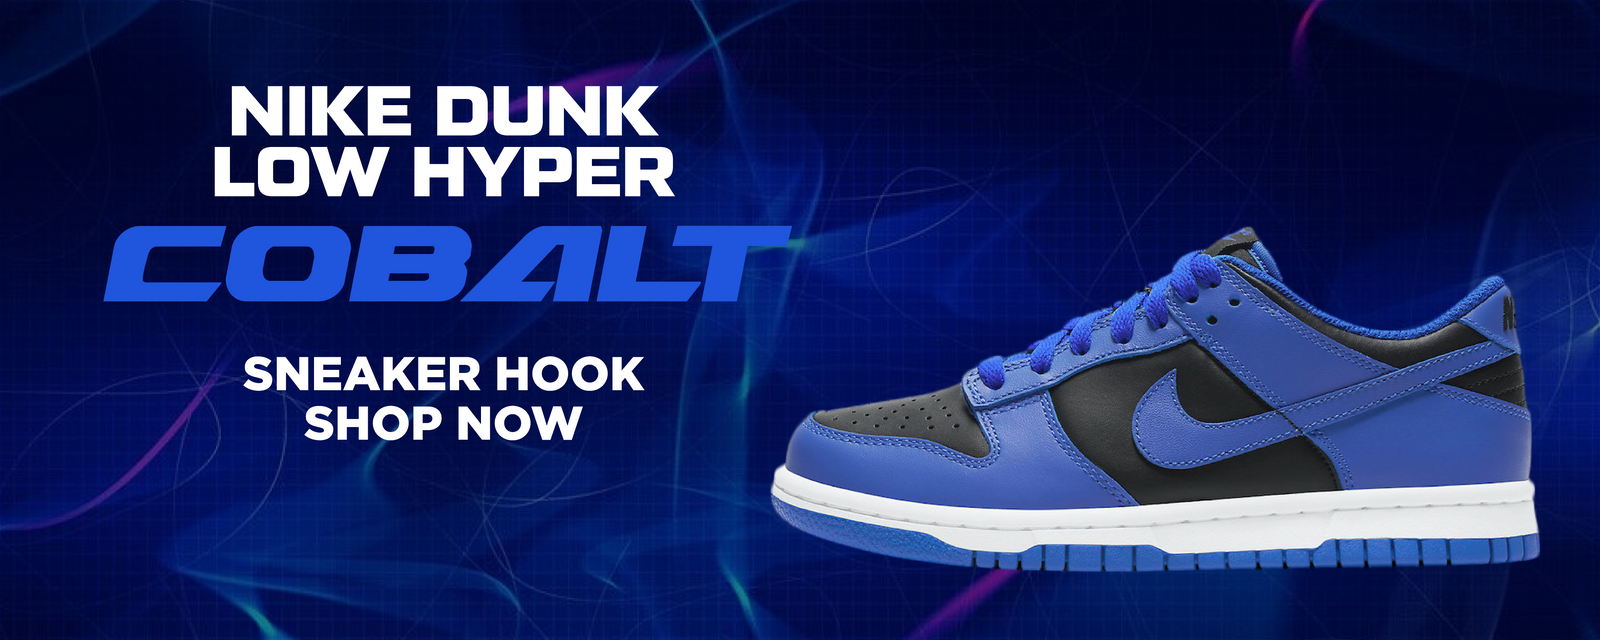 Dunk Low Hyper Cobalt Clothing to match Sneakers | Clothing to match Nike Dunk Low Hyper Cobalt Shoes